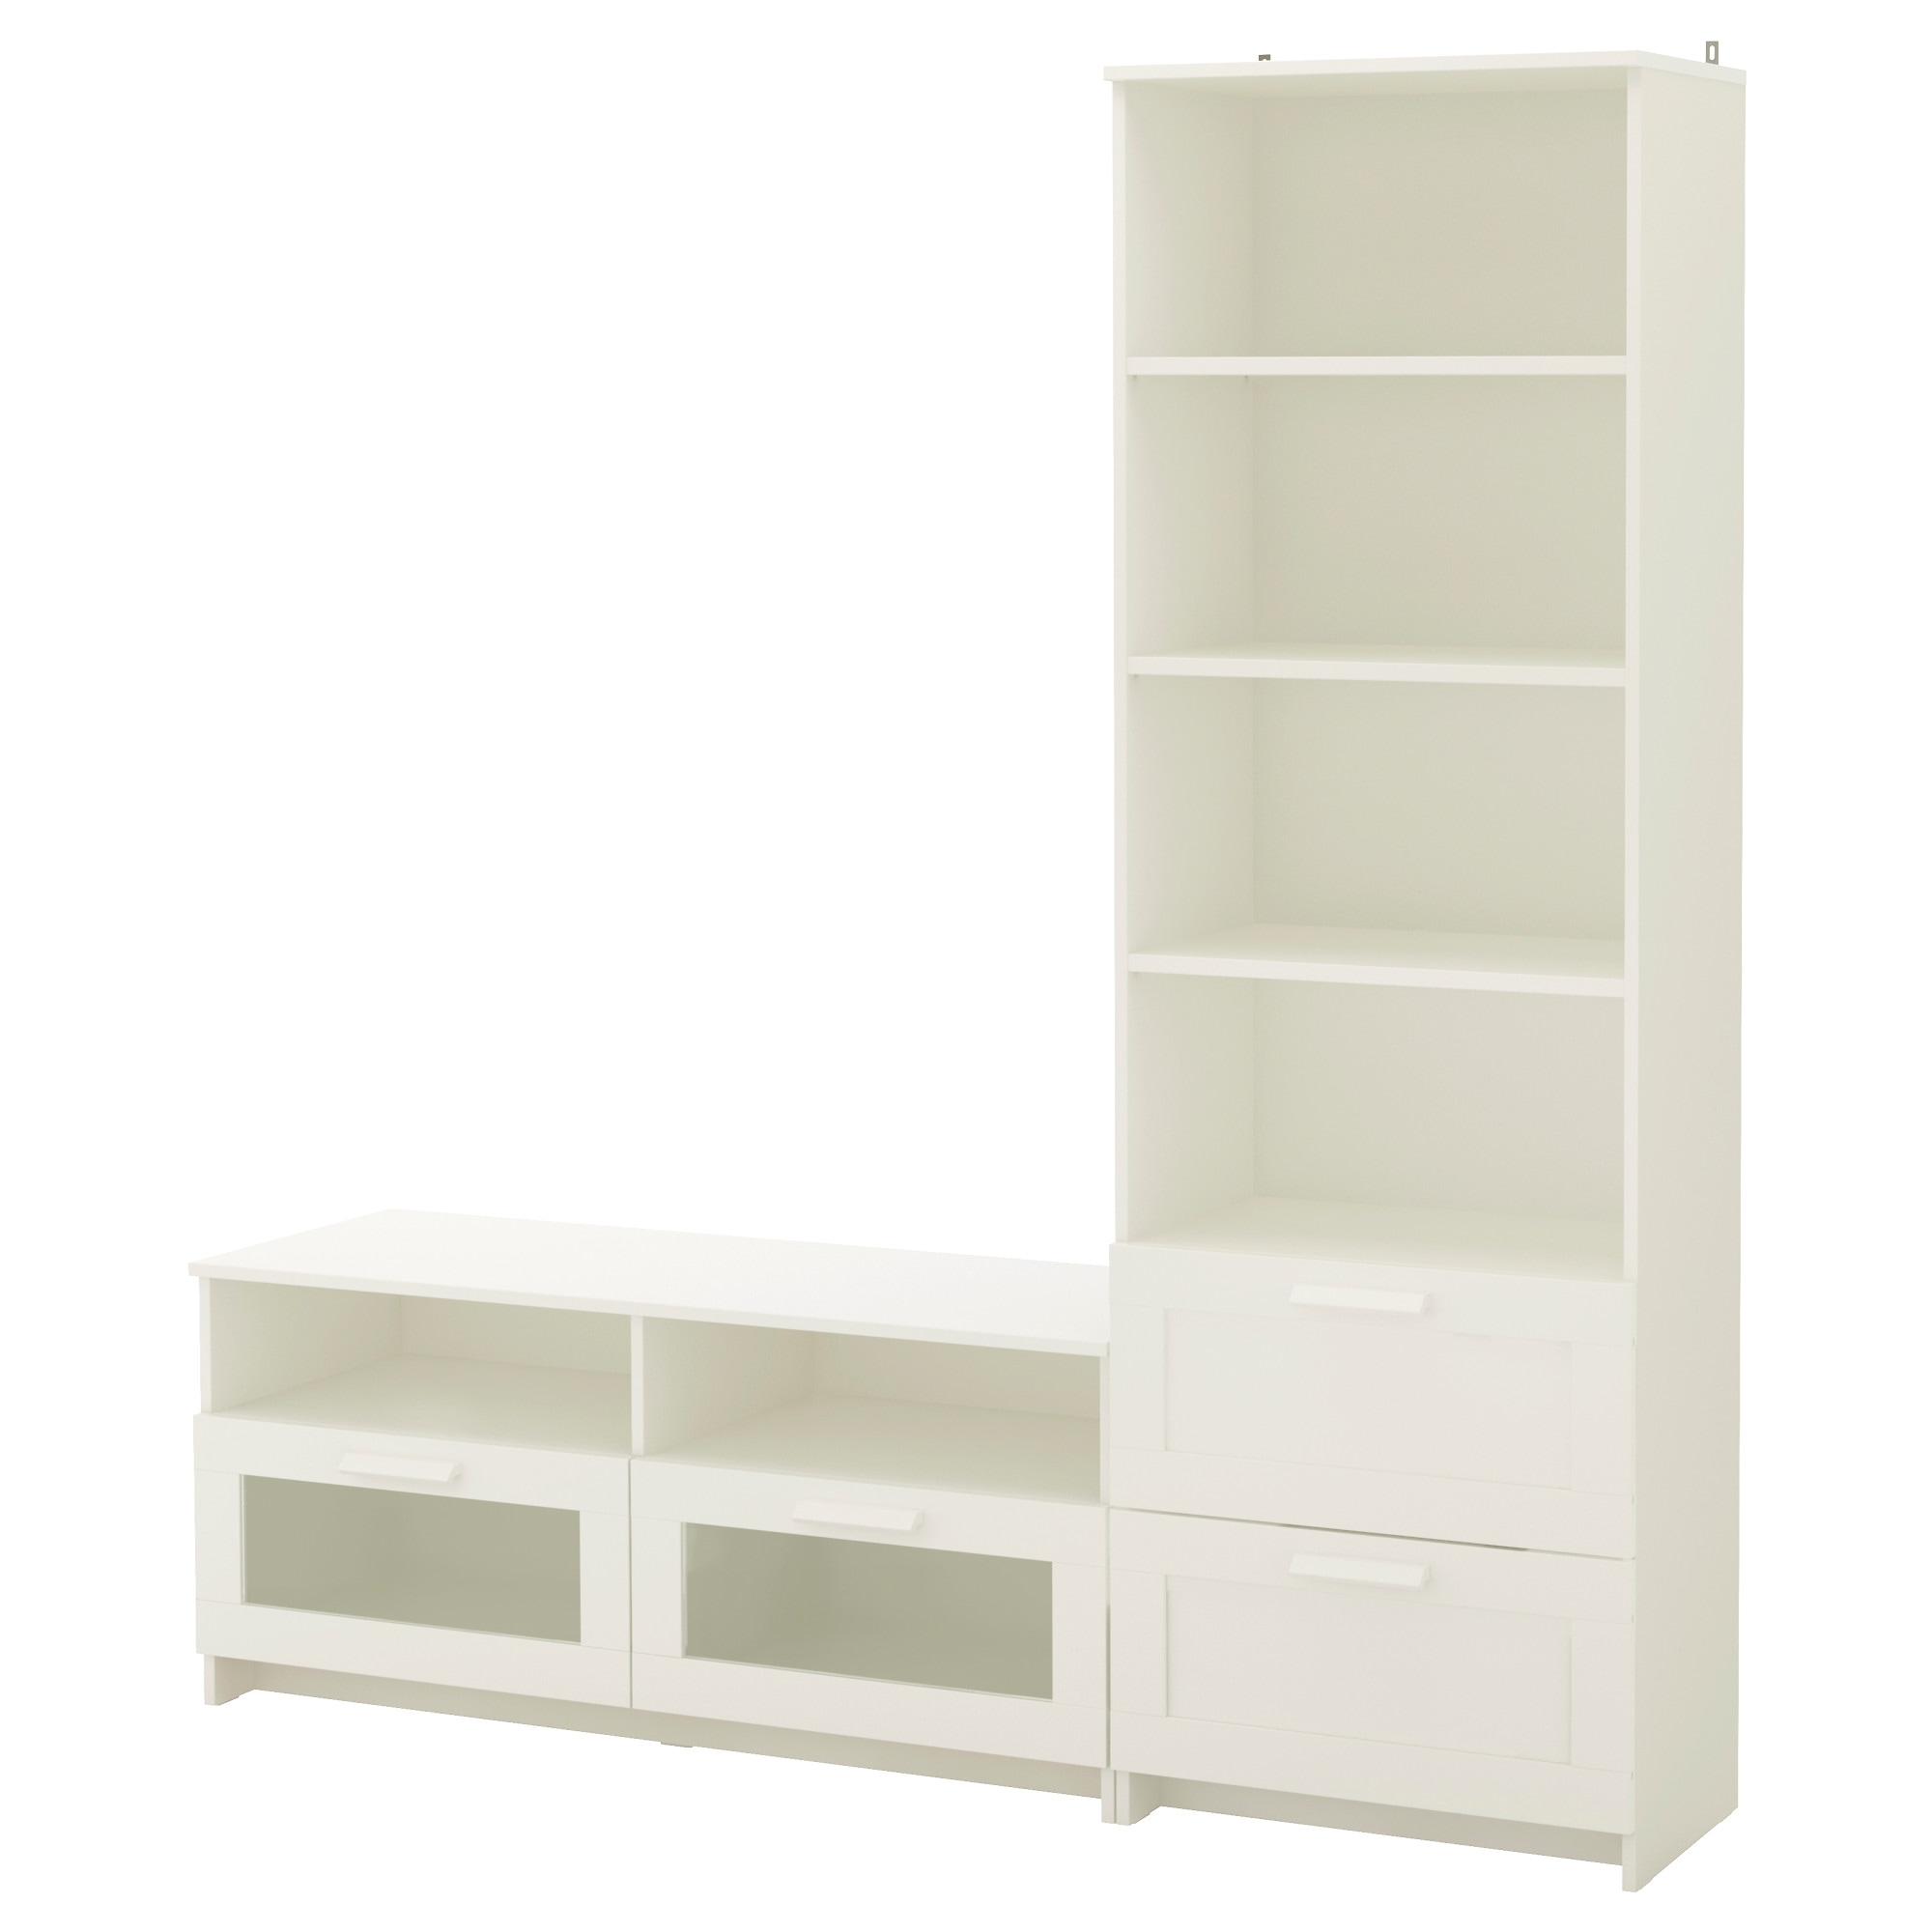 BRIMNES TV storage bination white IKEA